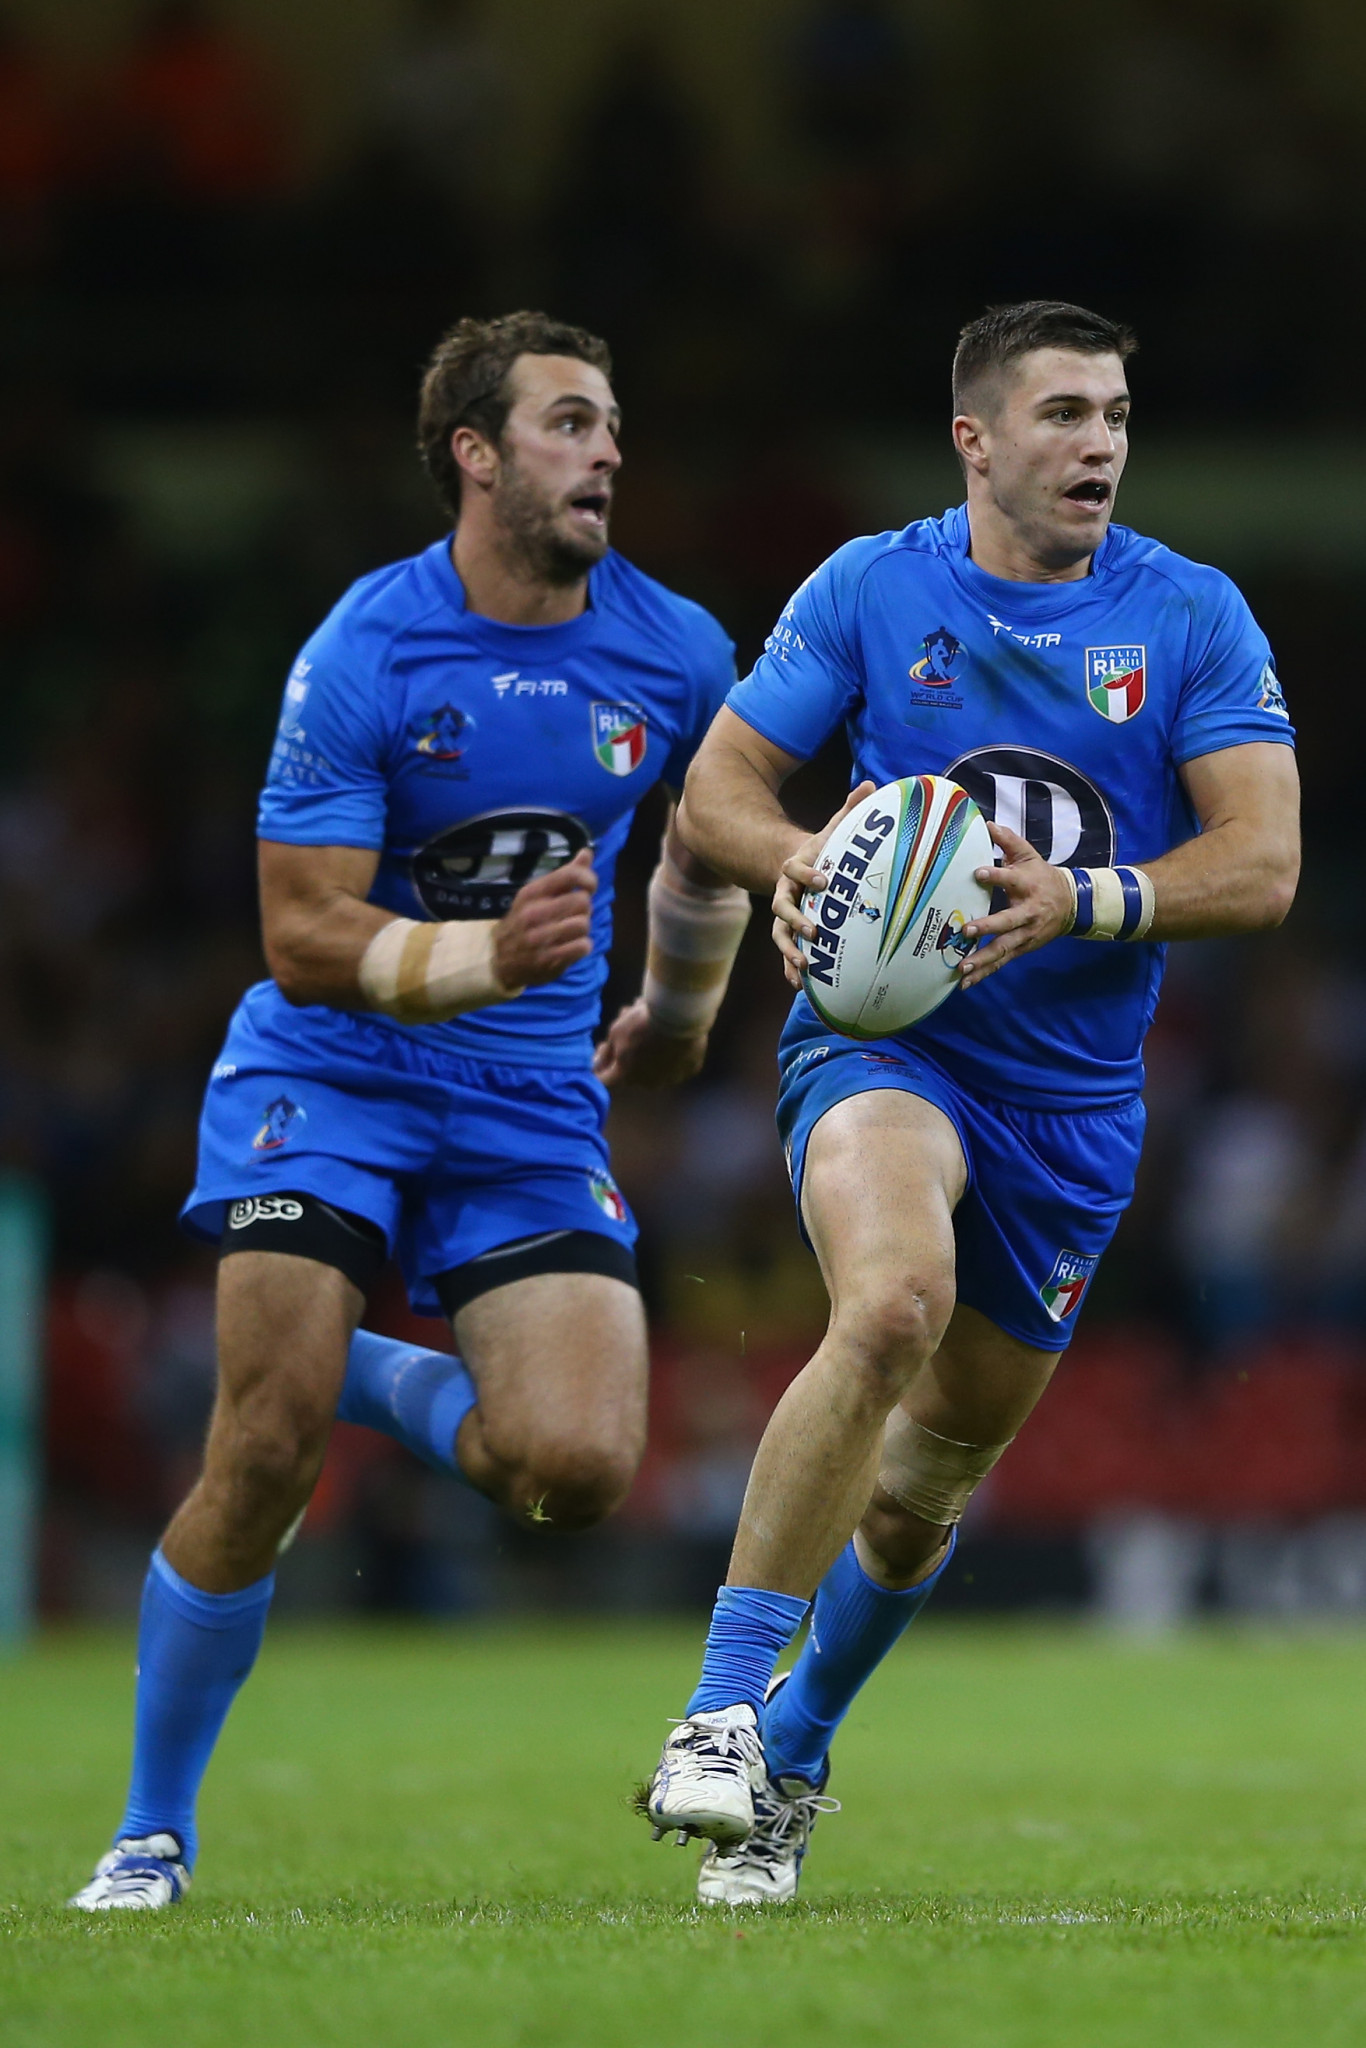 Italy made their Rugby League World Cup debut in 2013 ©Getty Images